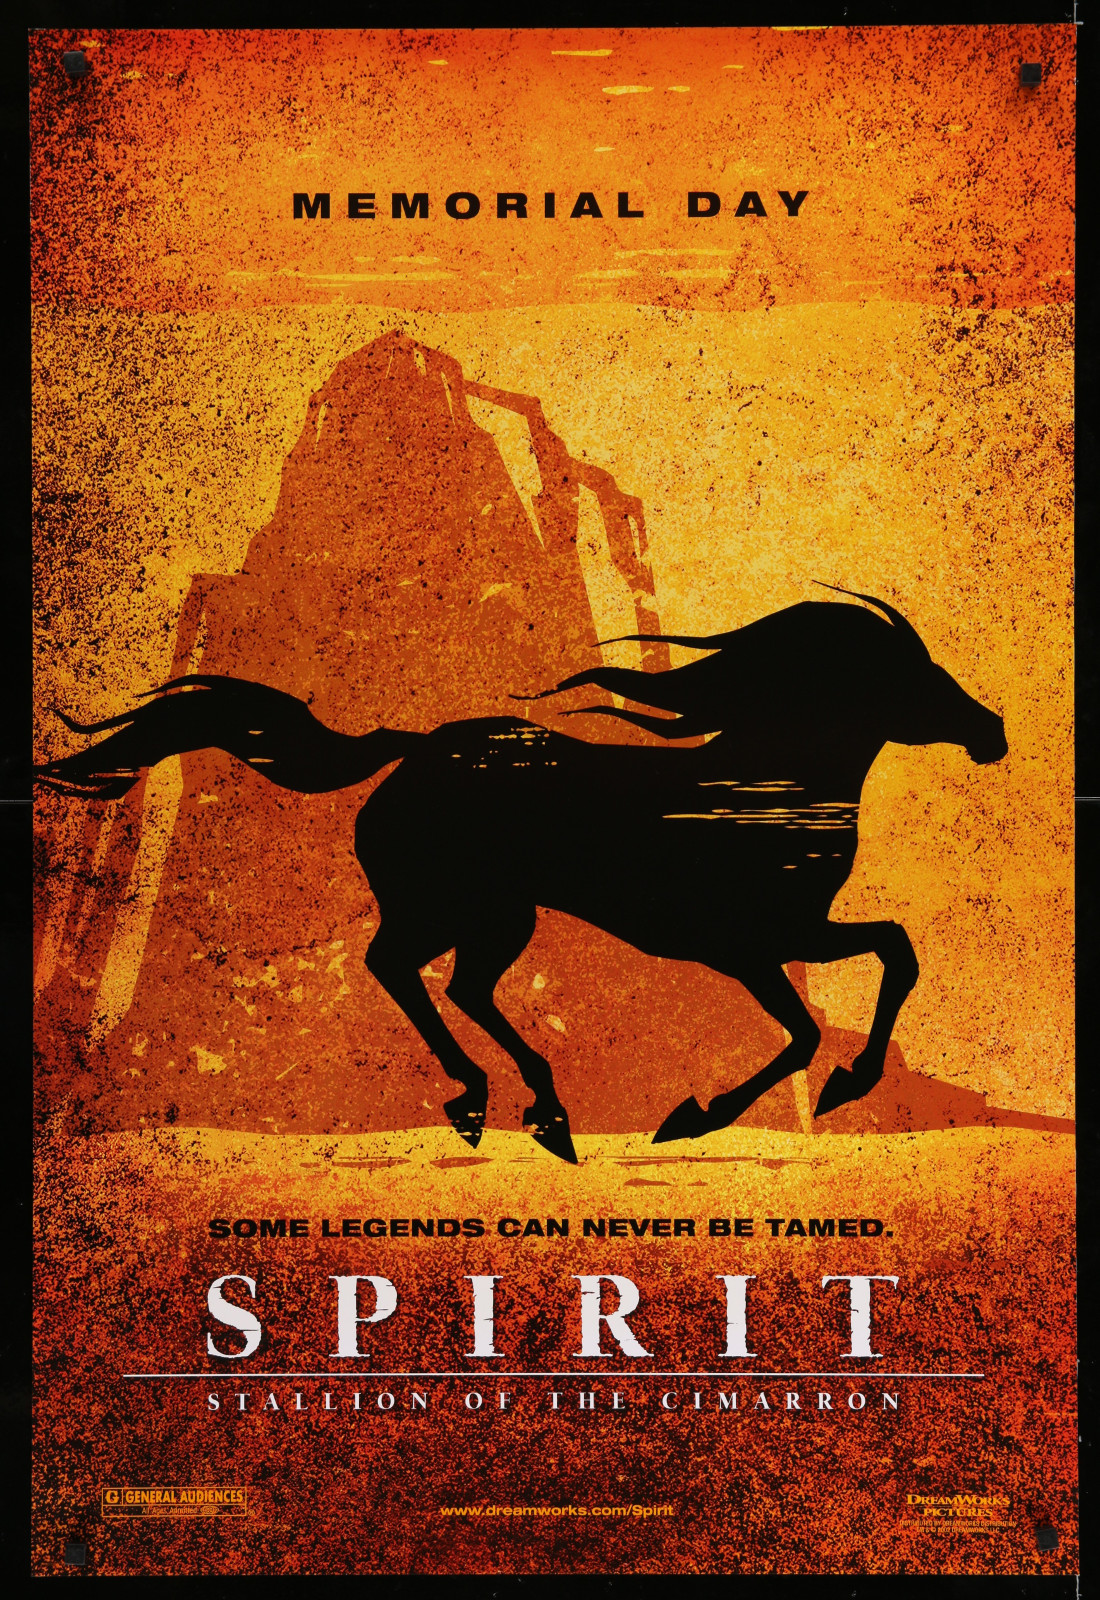 Spirit (Memorial Day – Orange) 2A366 A Part Of A Lot 29 Unfolded Double-Sided 27X40 One-Sheets '90S-00S Great Movie Images!